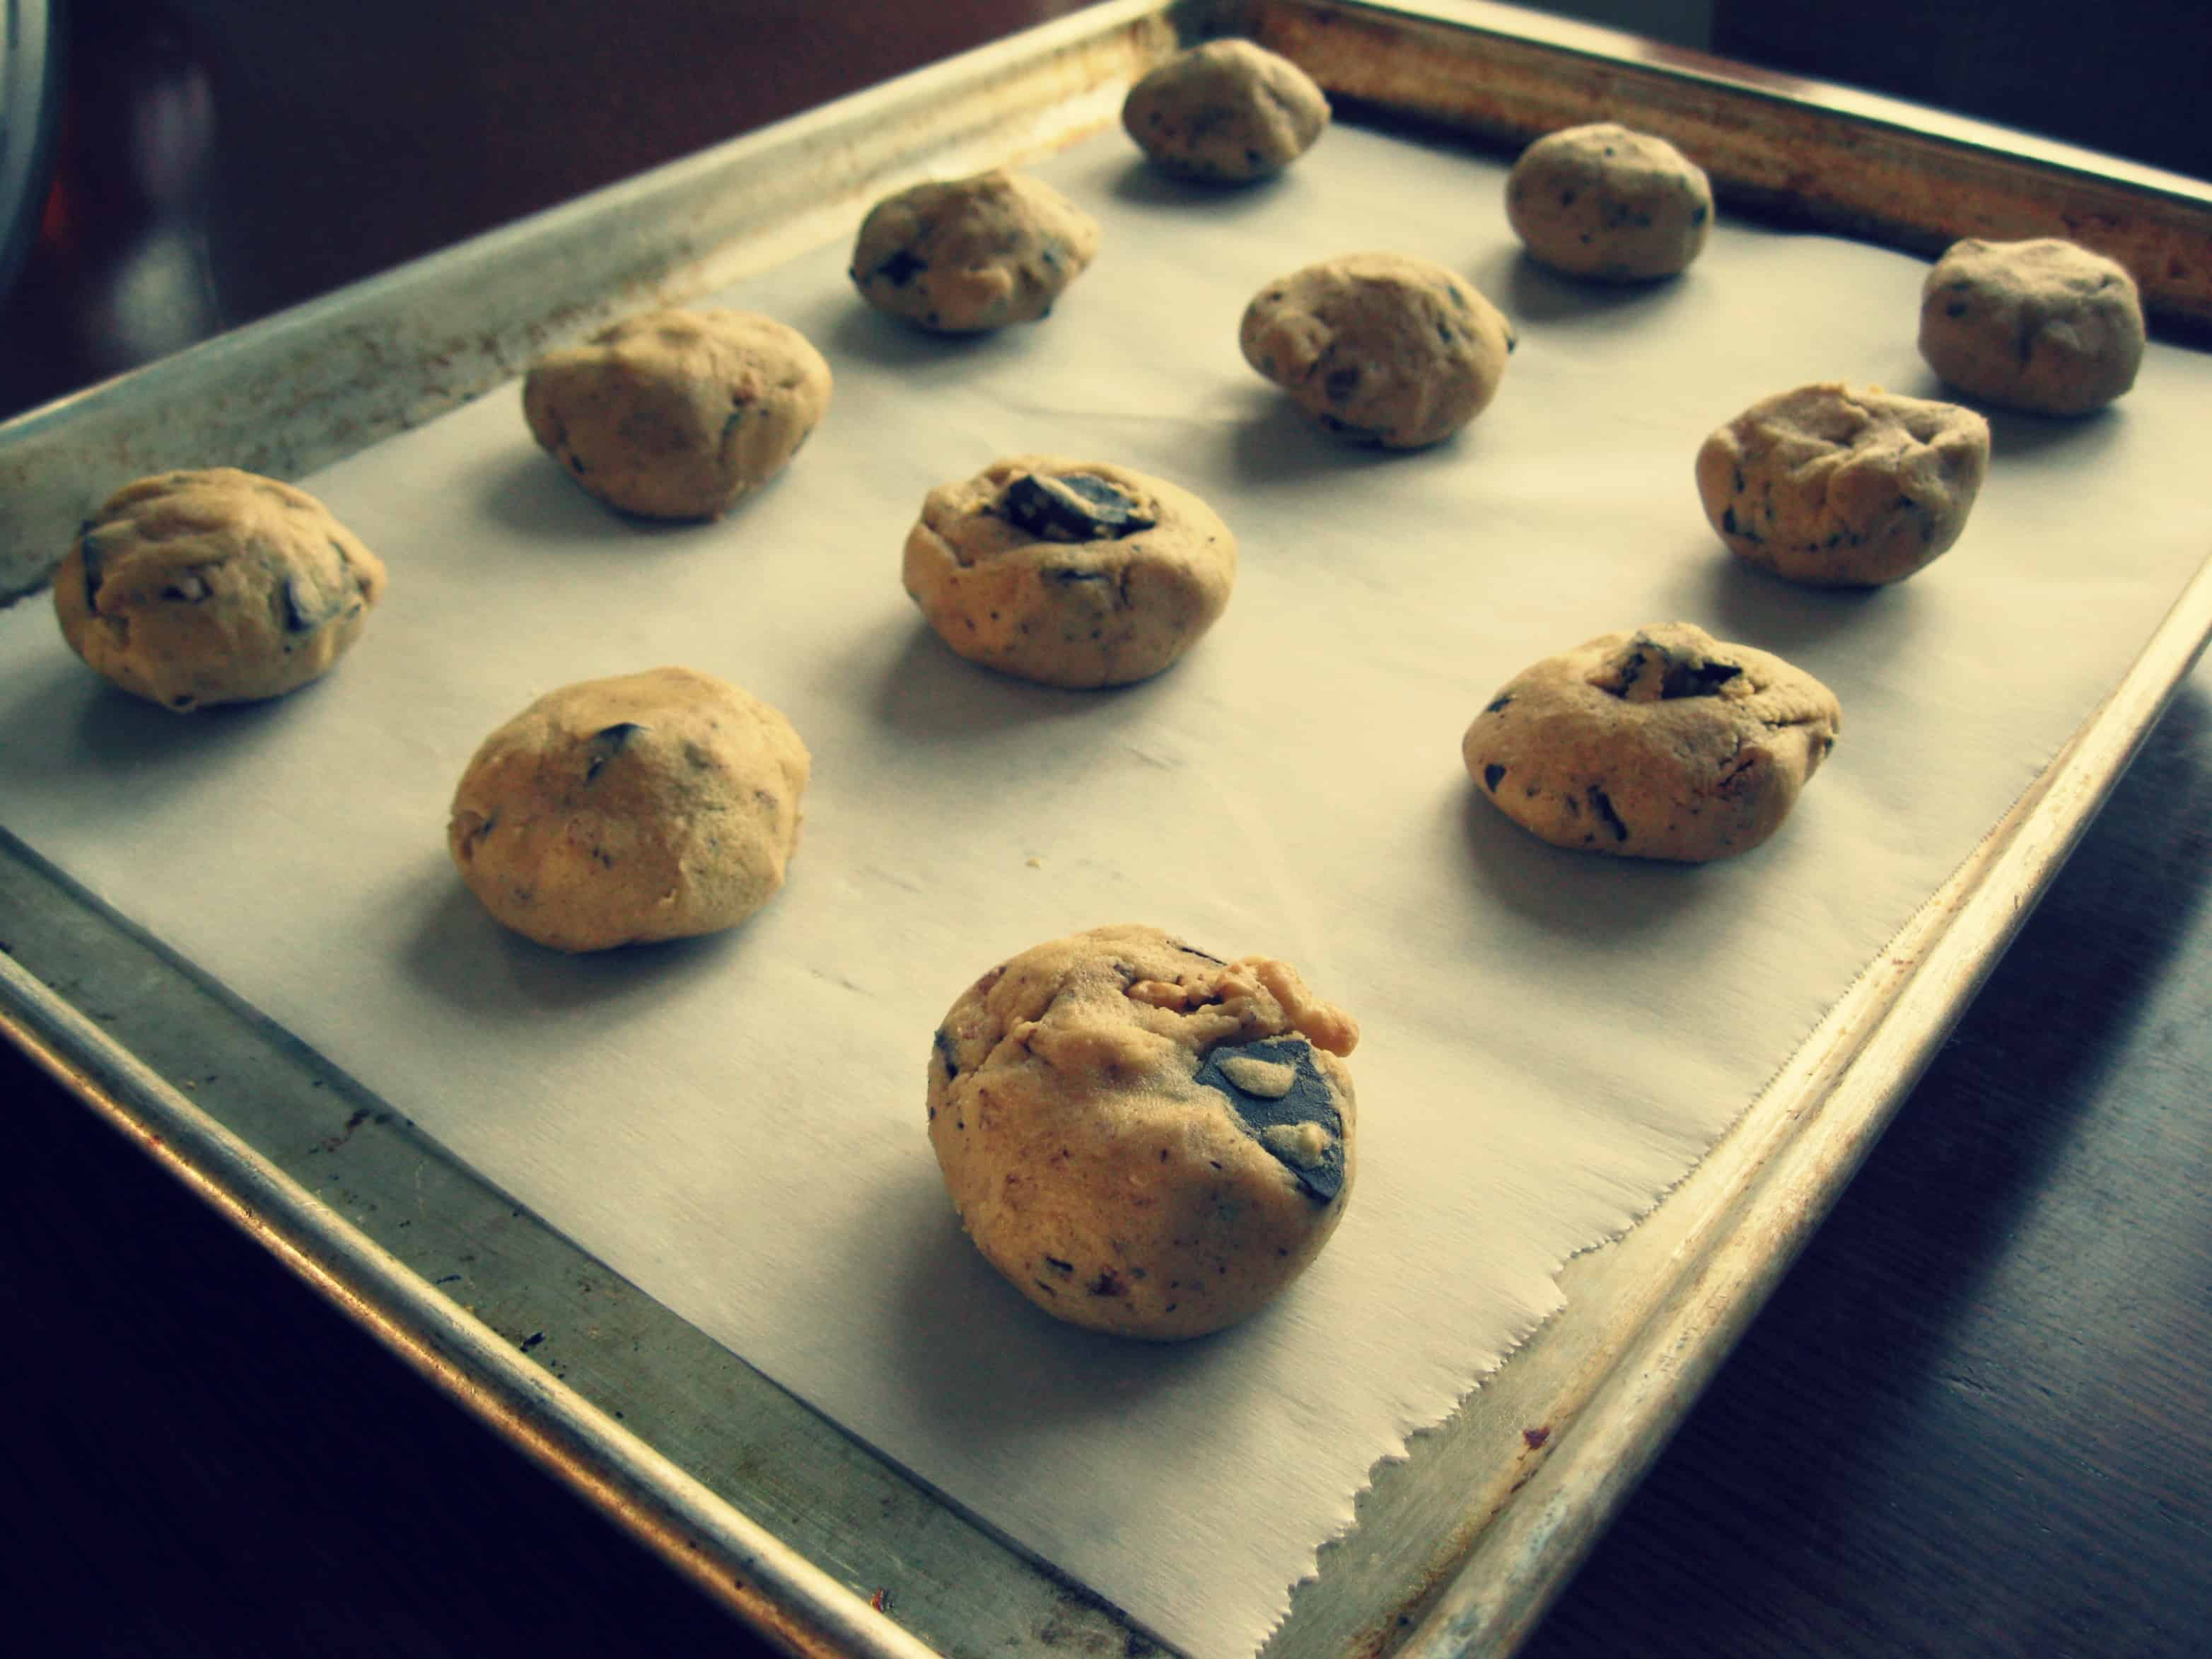 Chocolate chip cookie dough balls sitting on a parchment lined baking sheet.